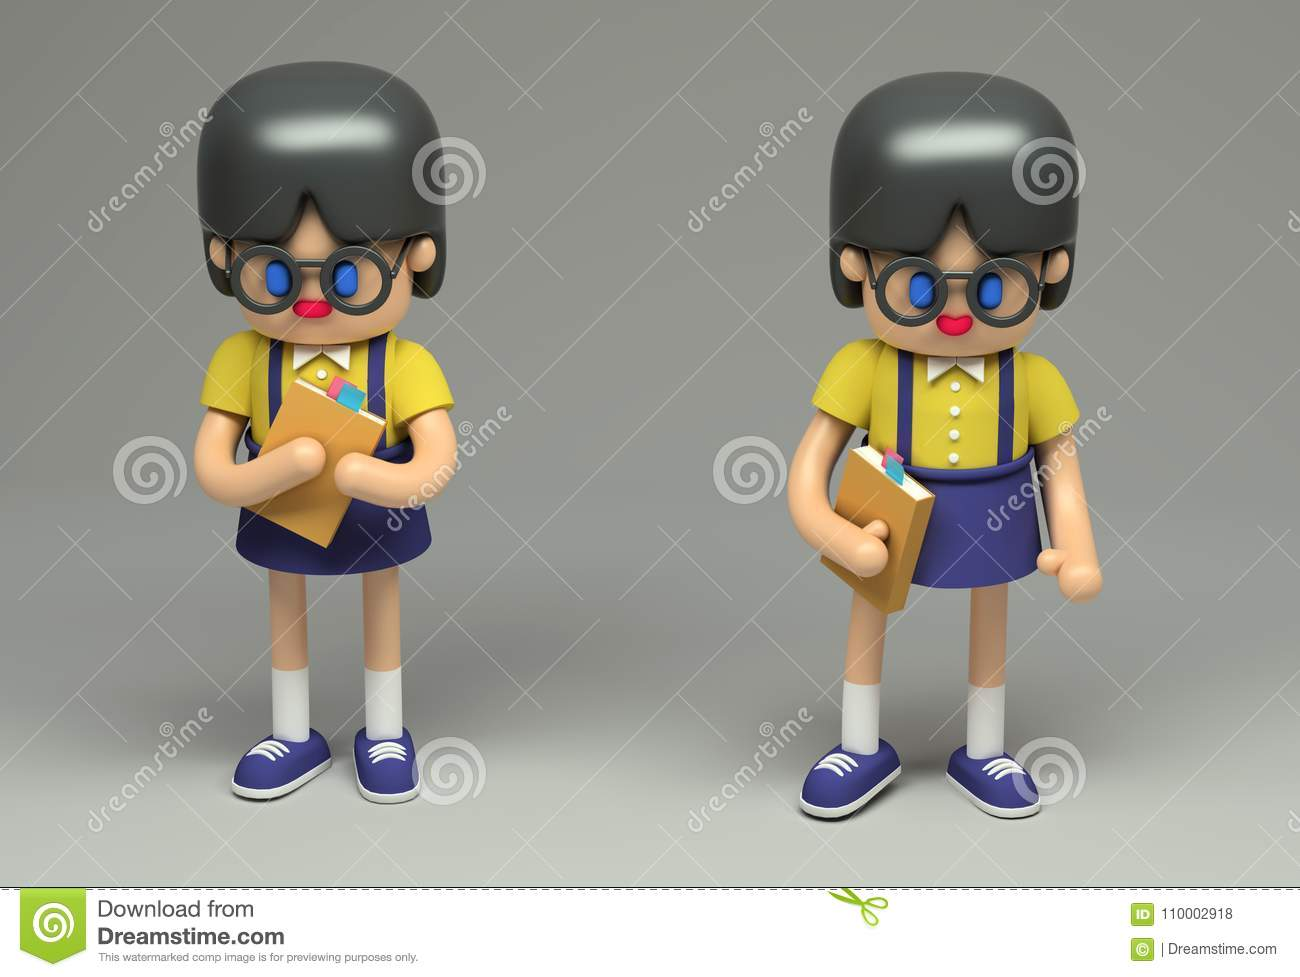 Female Cartoon Characters With Black Hair And Glasses-8225